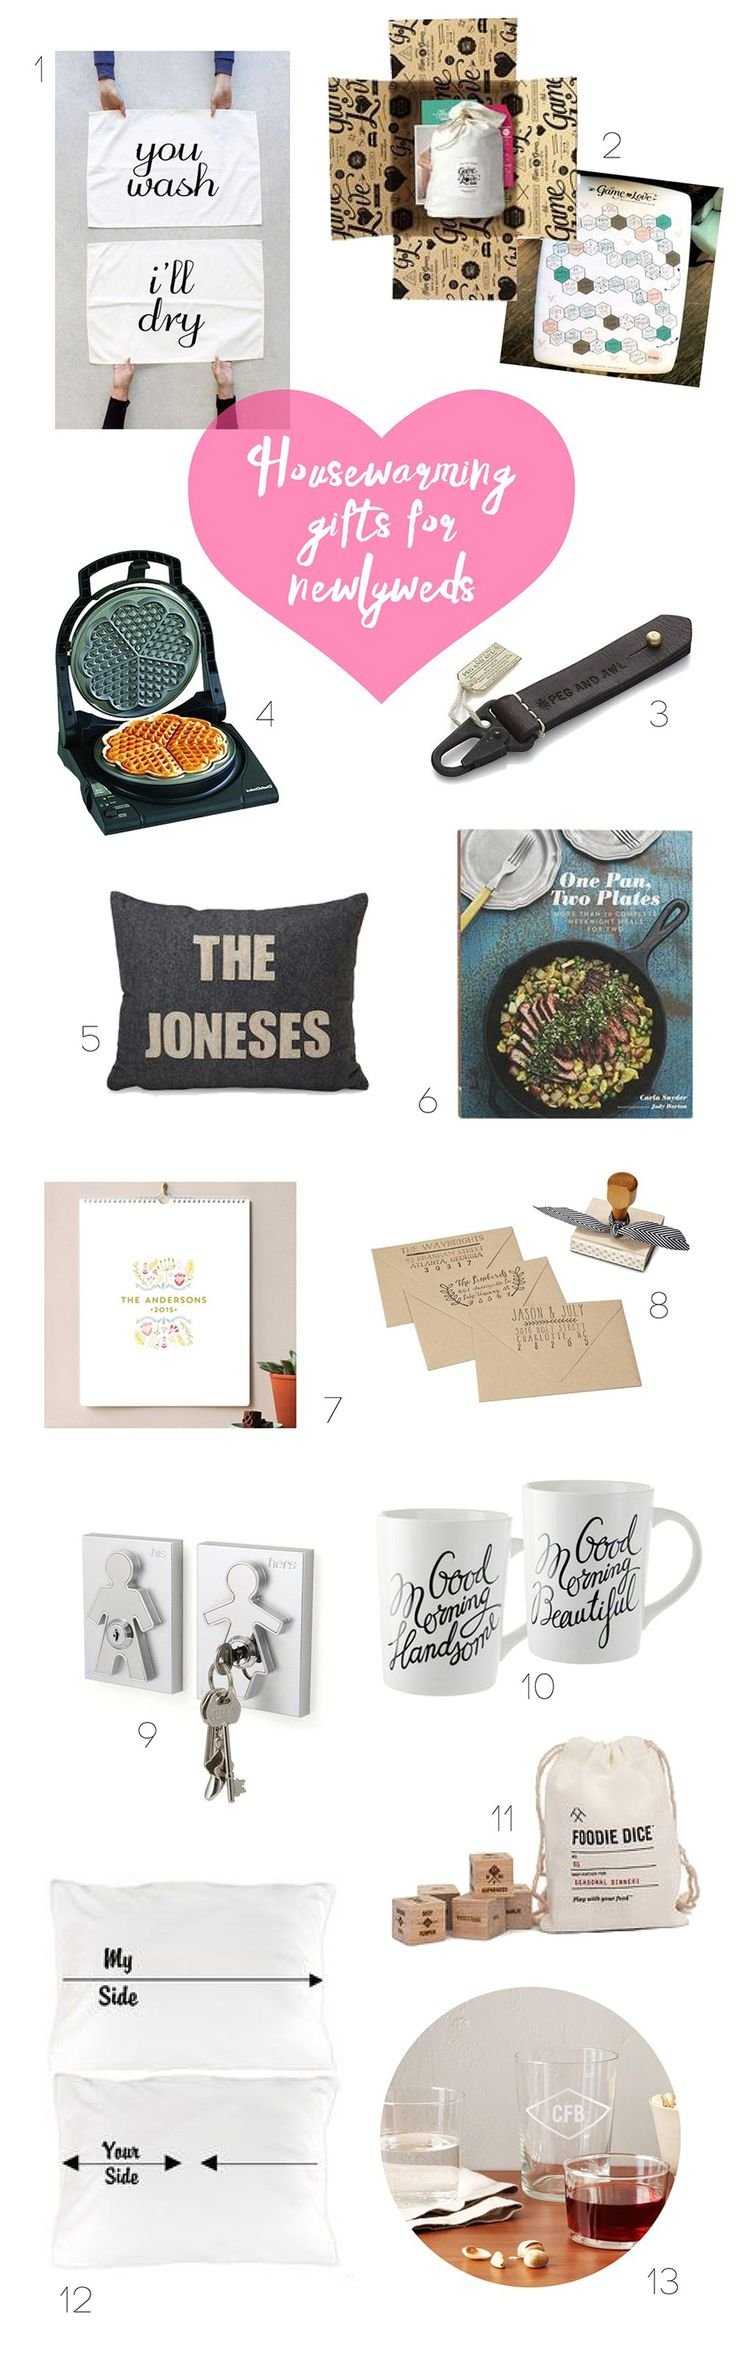 Practical Wedding Gifts For The Newlyweds: 25+ Best Ideas About Gifts For Newlyweds On Pinterest